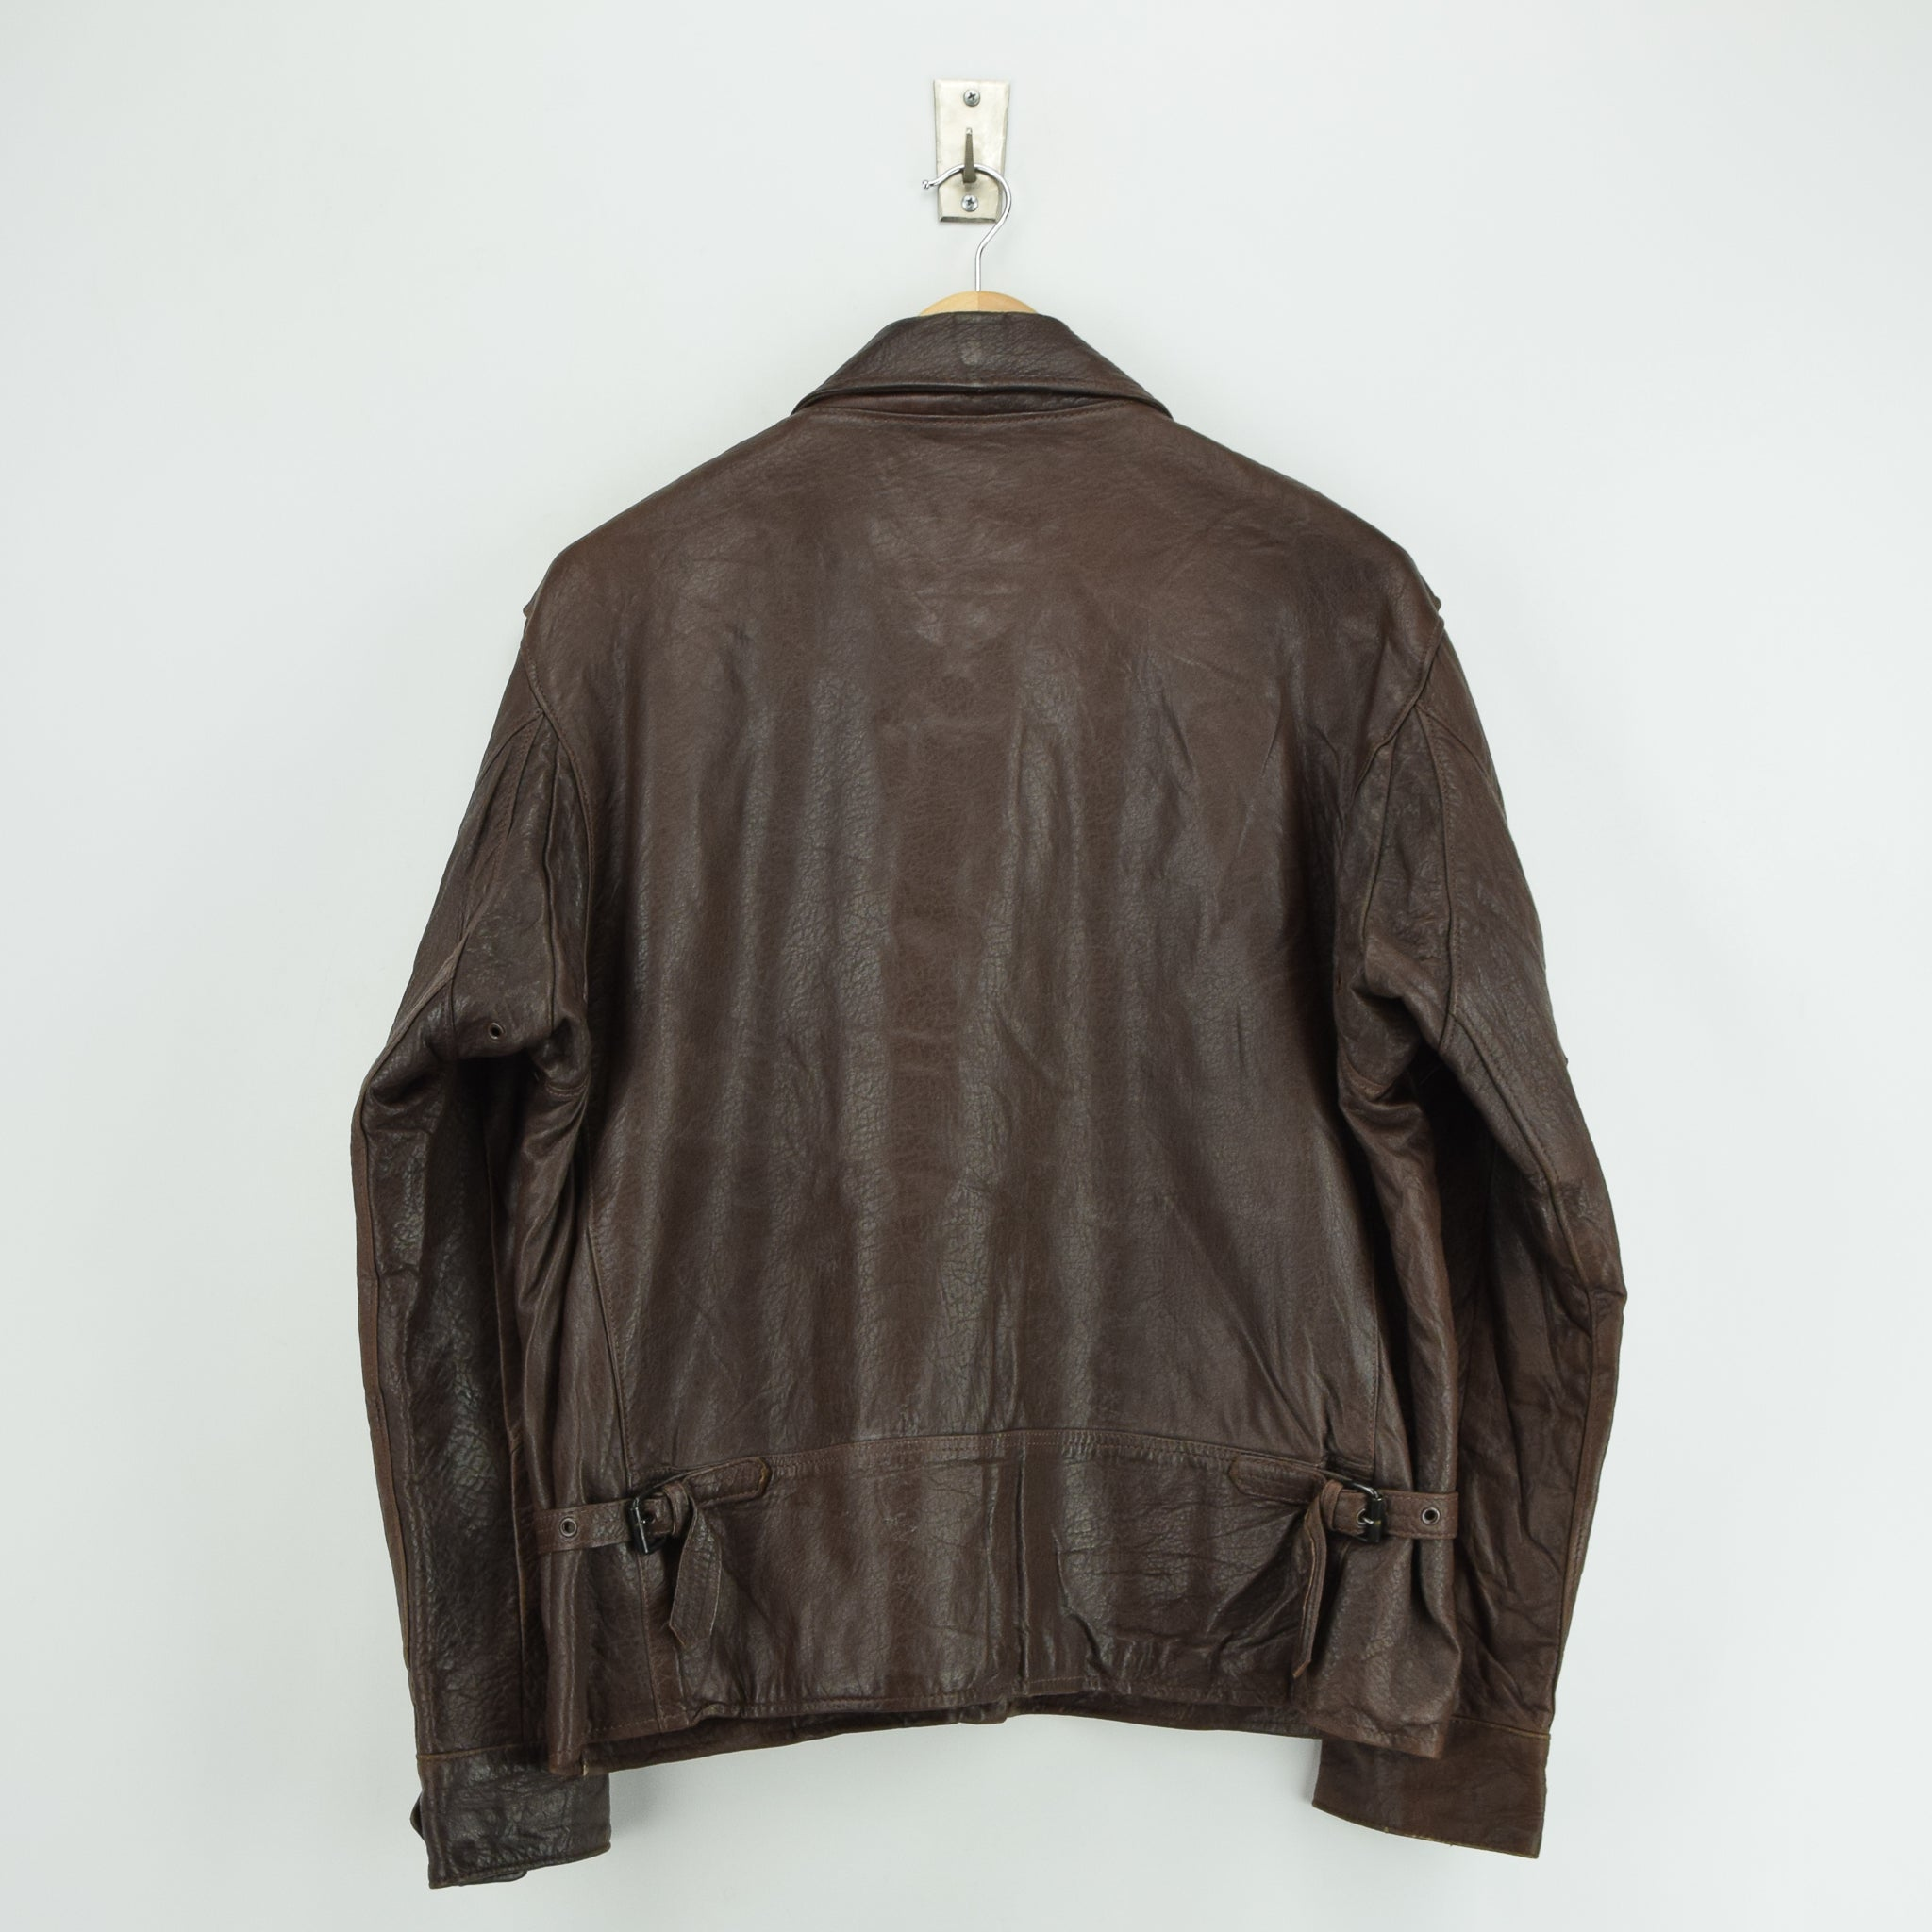 Vintage Banana Republic Brown Leather Bomber Biker Style Jacket Made in USA L back